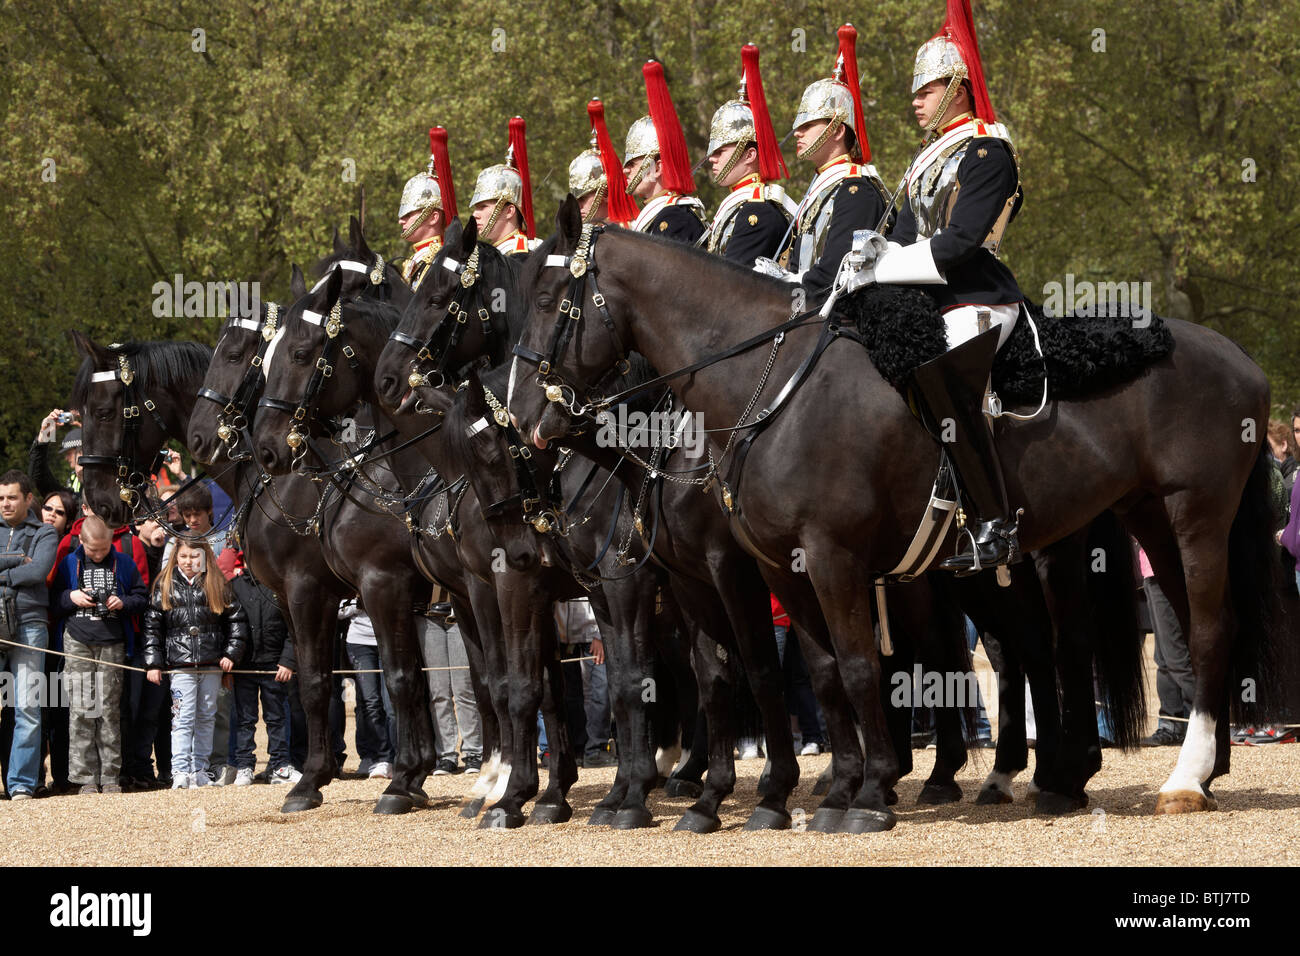 British Household Cavalry, Changing of the Horse Guards, Horse Guards, London, England, United Kingdom Stock Photo